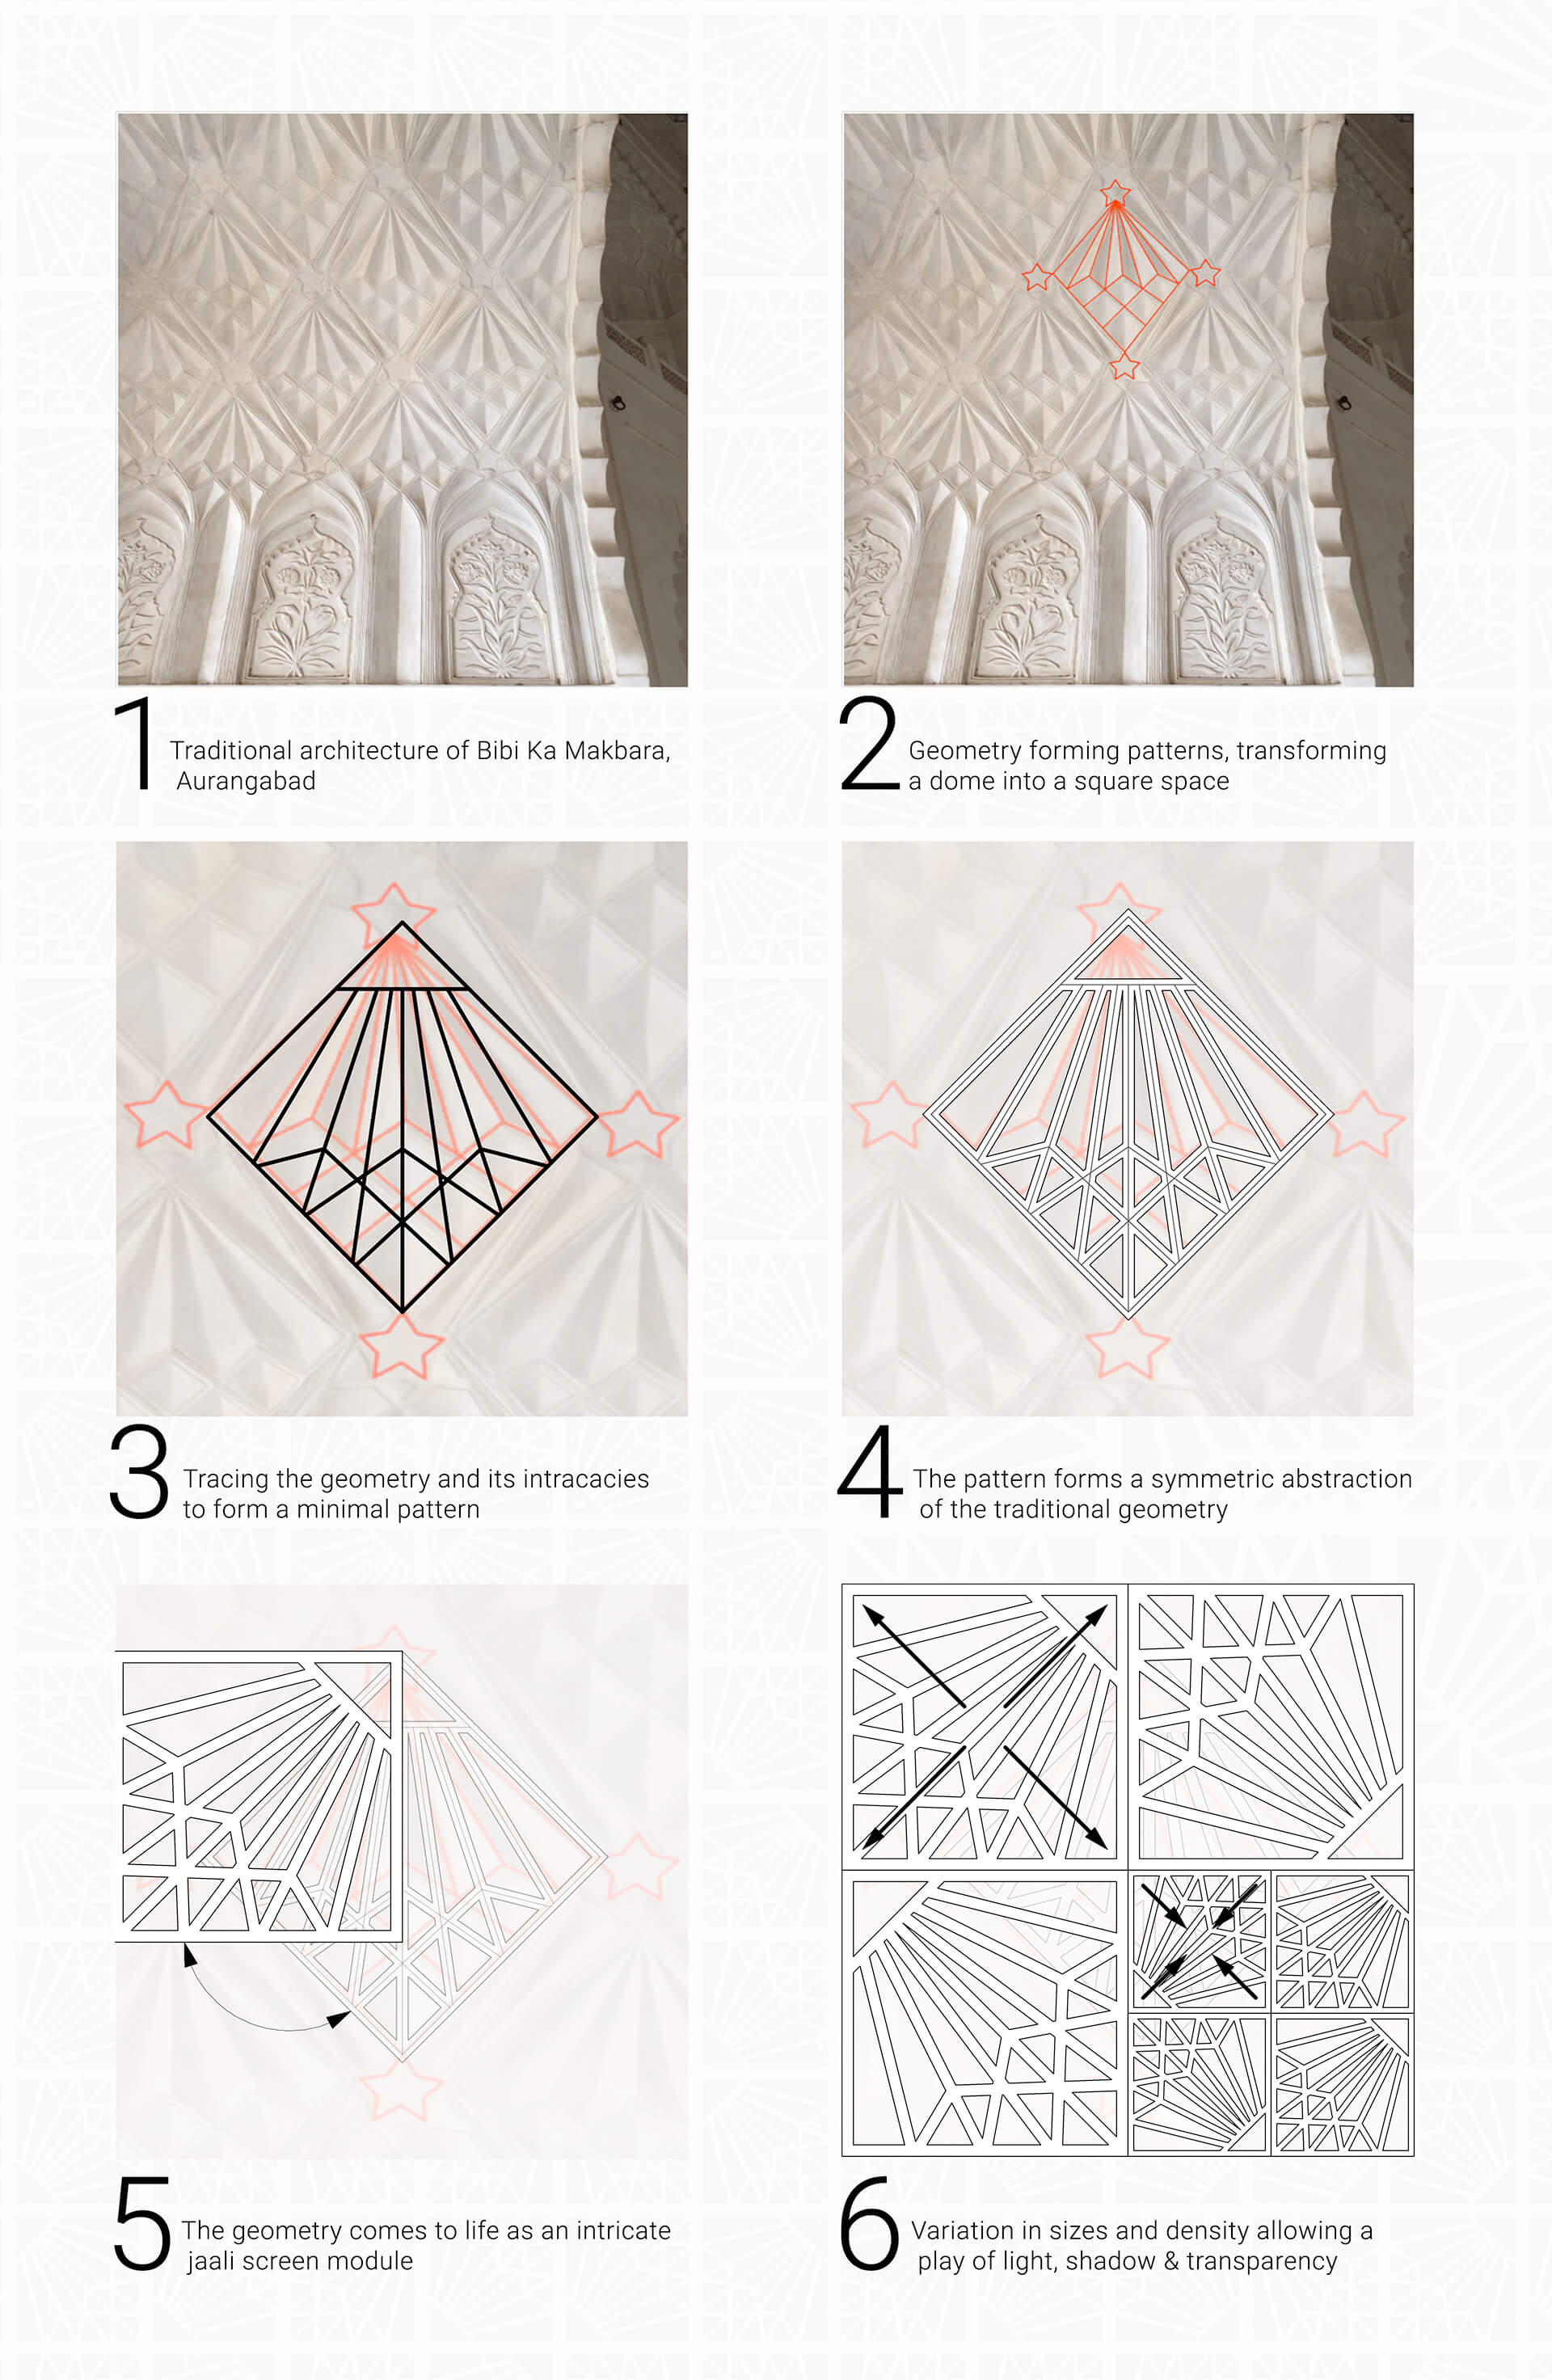 Design evolution of the jaali patterns | Auric Hall by IMK Architects | STIRworld